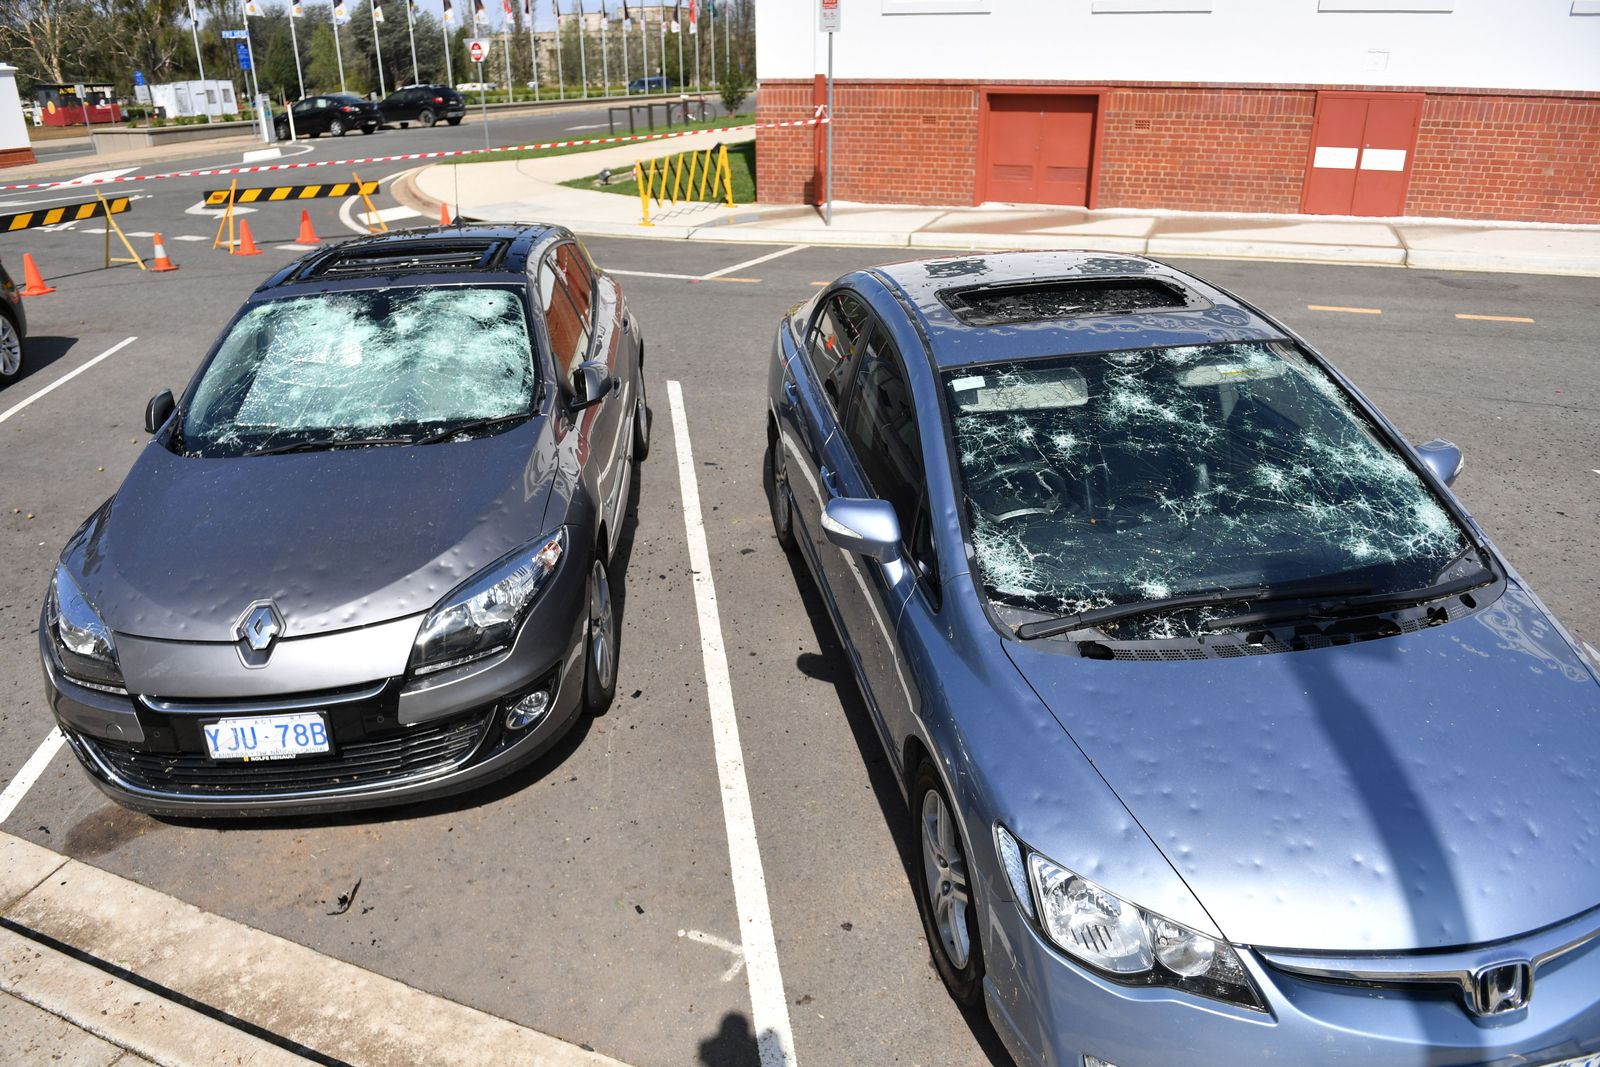 Aftermath of a hail storm in Canberra, Australia - 20 Jan 2020